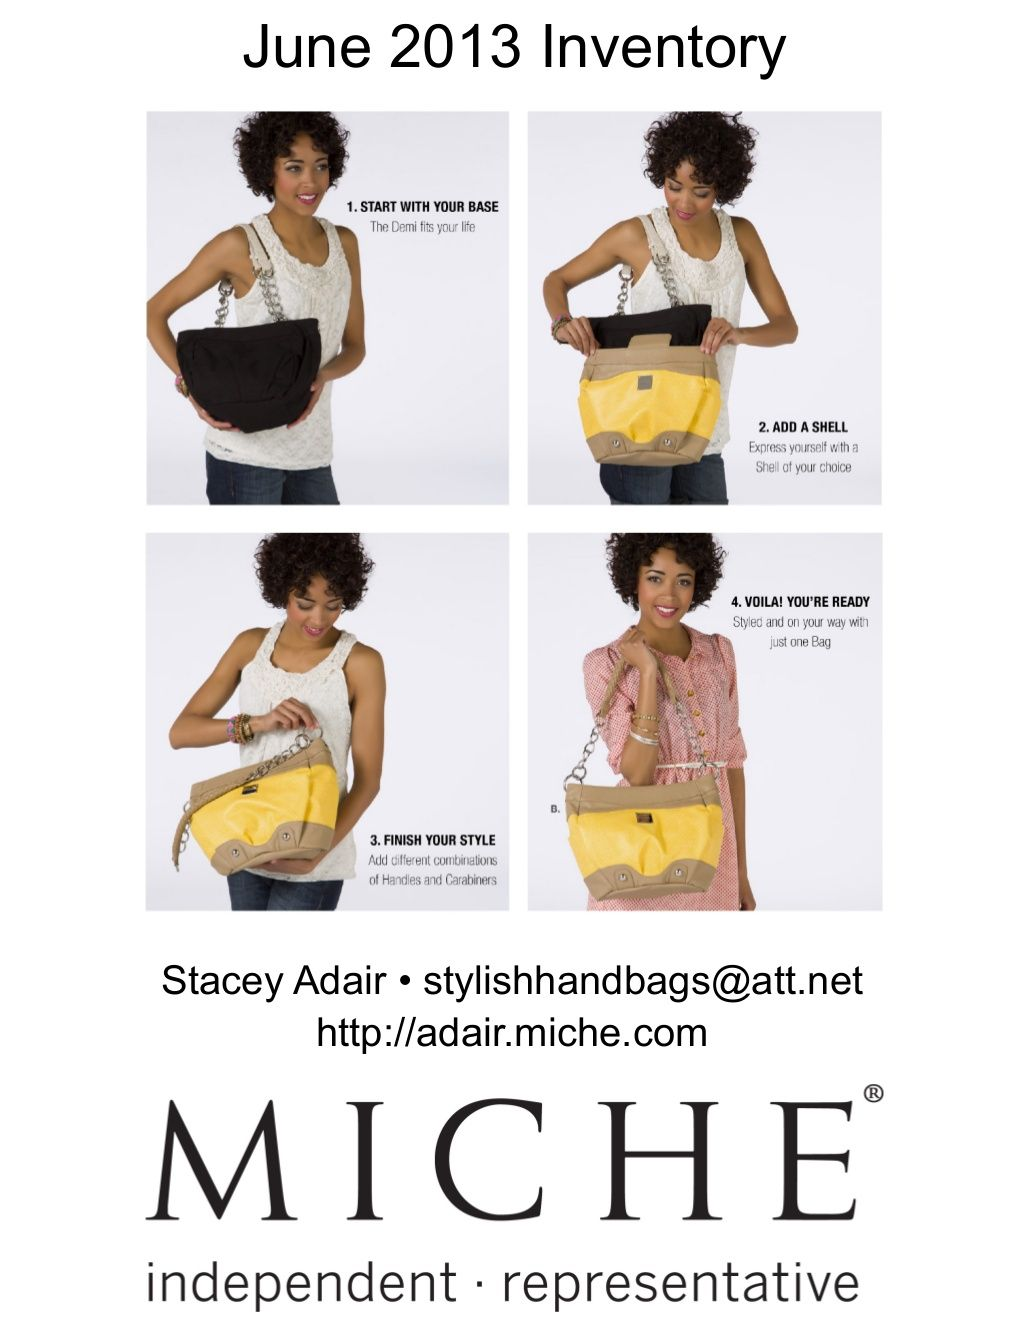 miche-june-2013-inventory-and-promotions by Stacey Adair via Slideshare  Independent Miche Representative http://adair.miche.com